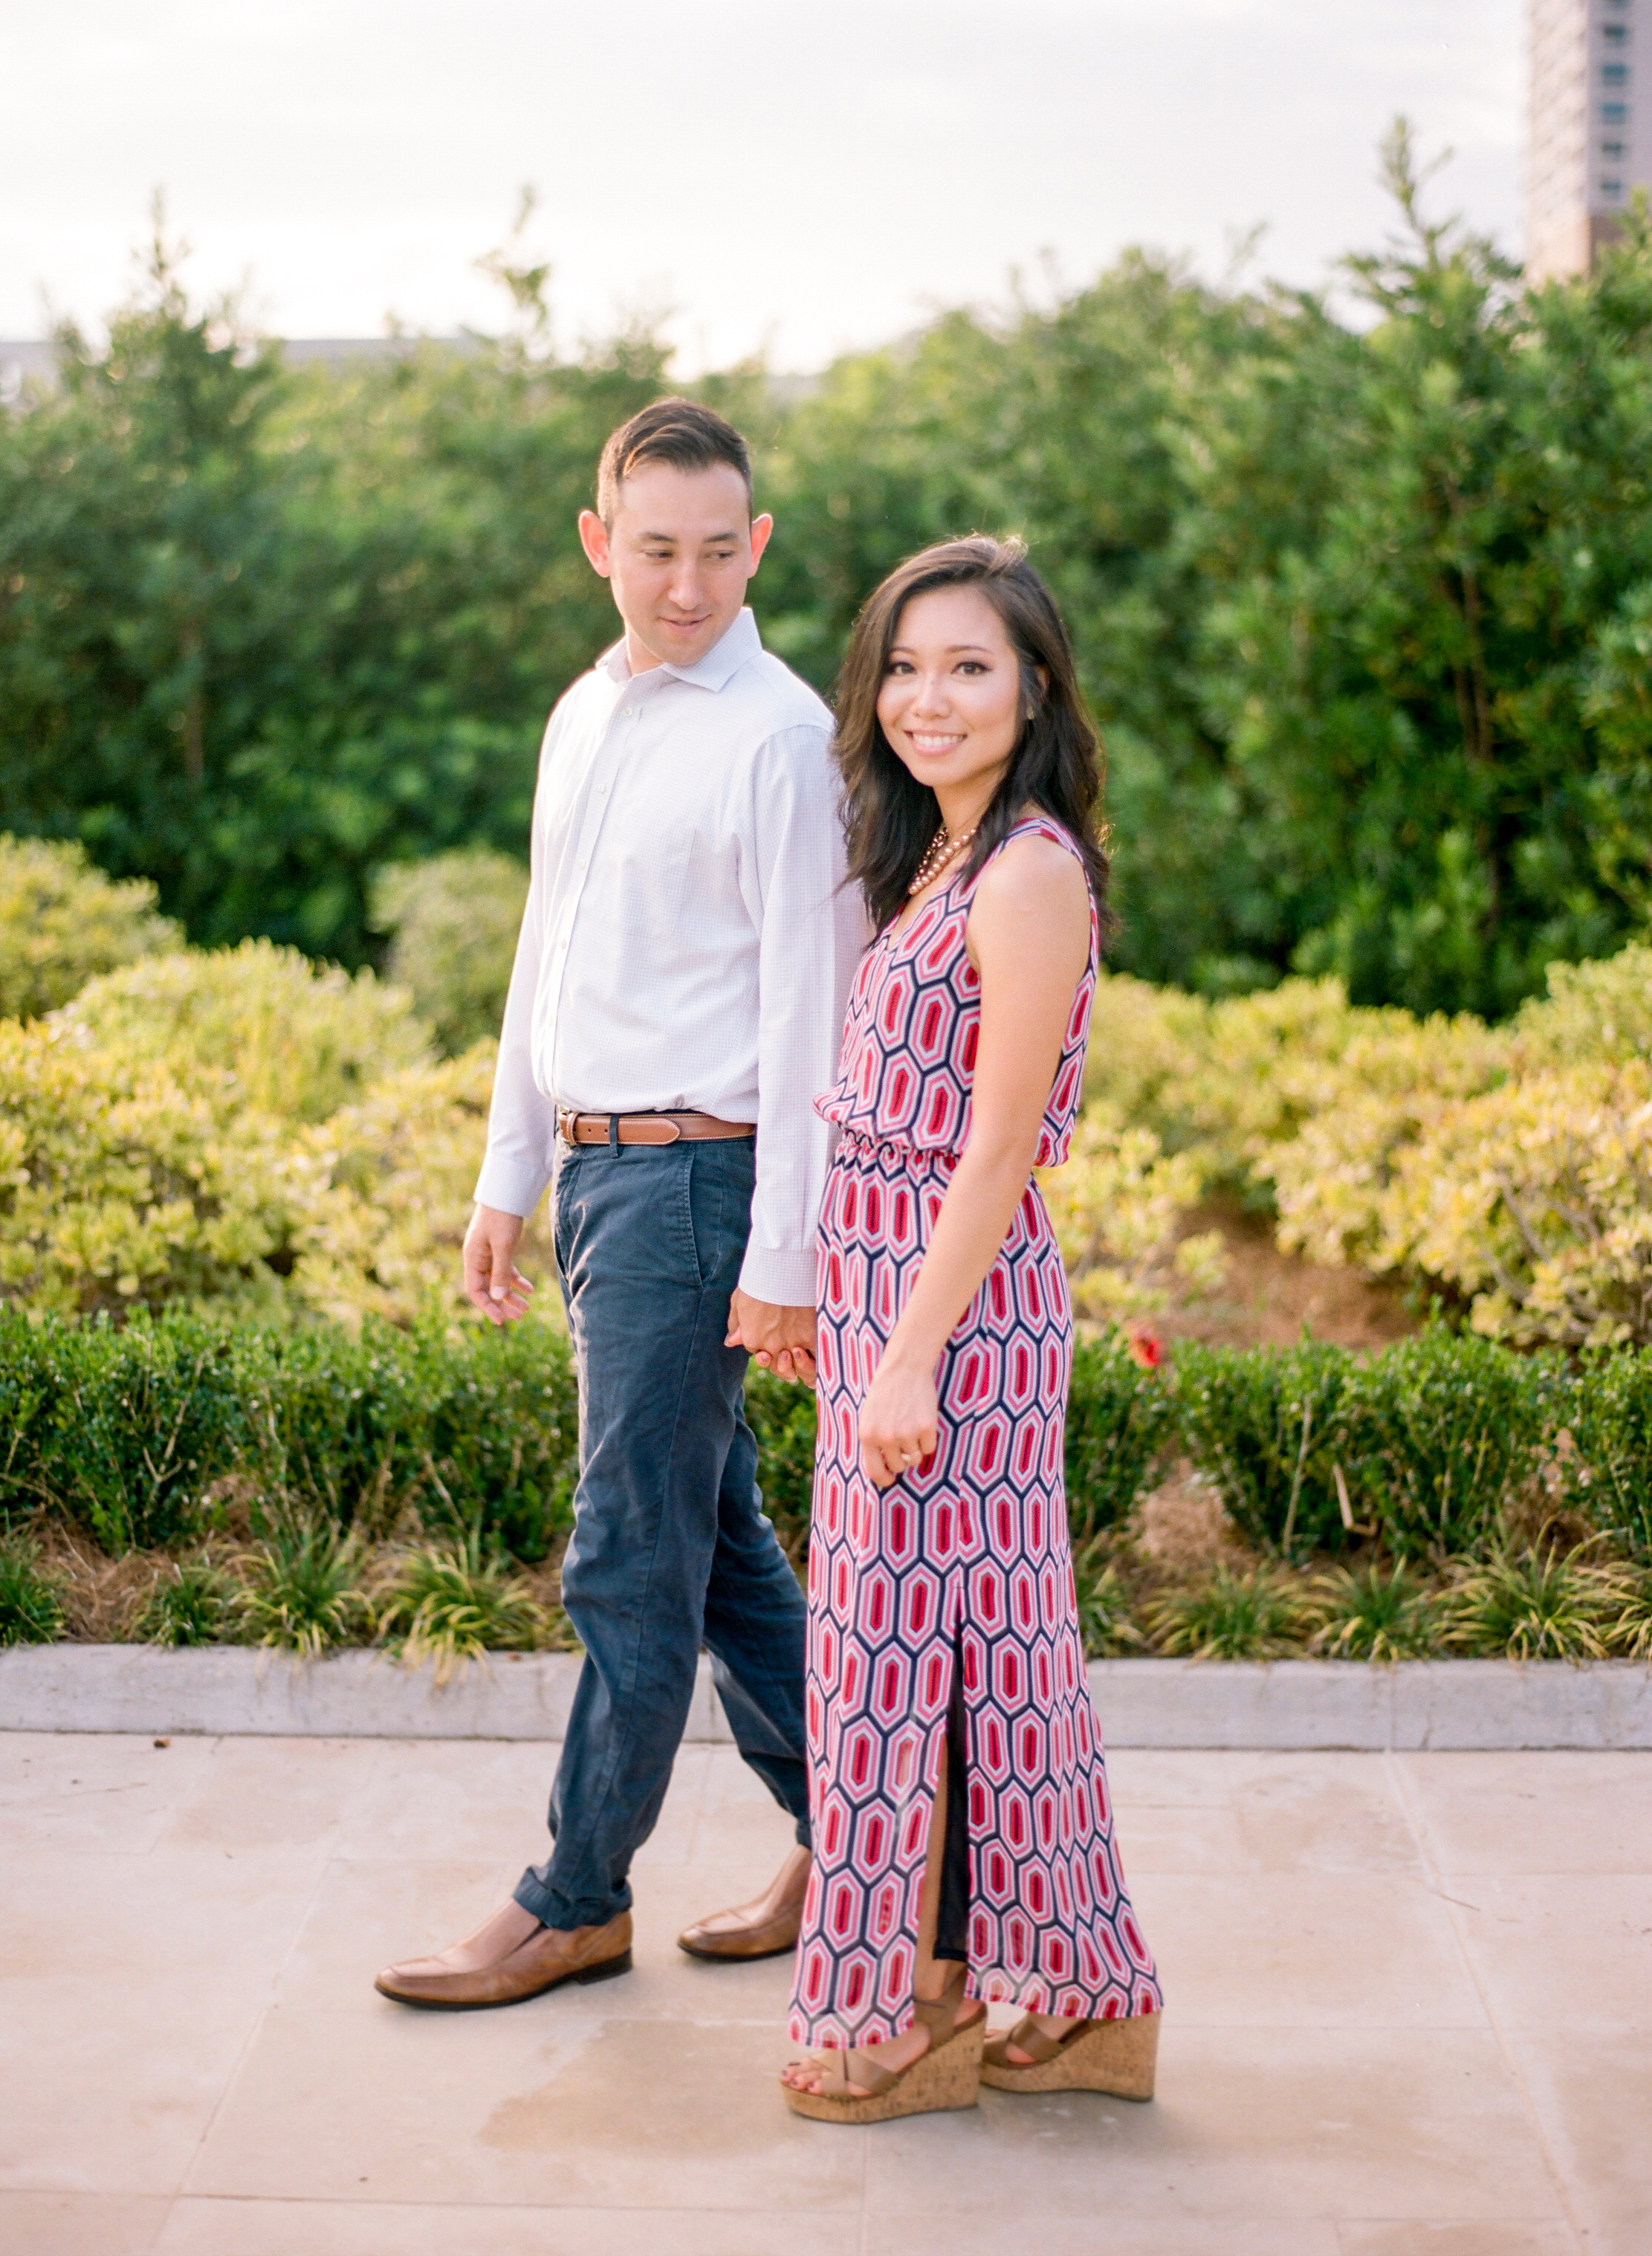 Dana-Fernandez-Photography-Houston-Wedding-Photographer-Engagements-Style-Me-Pretty-Film-Destination-Texas-5-2.jpg